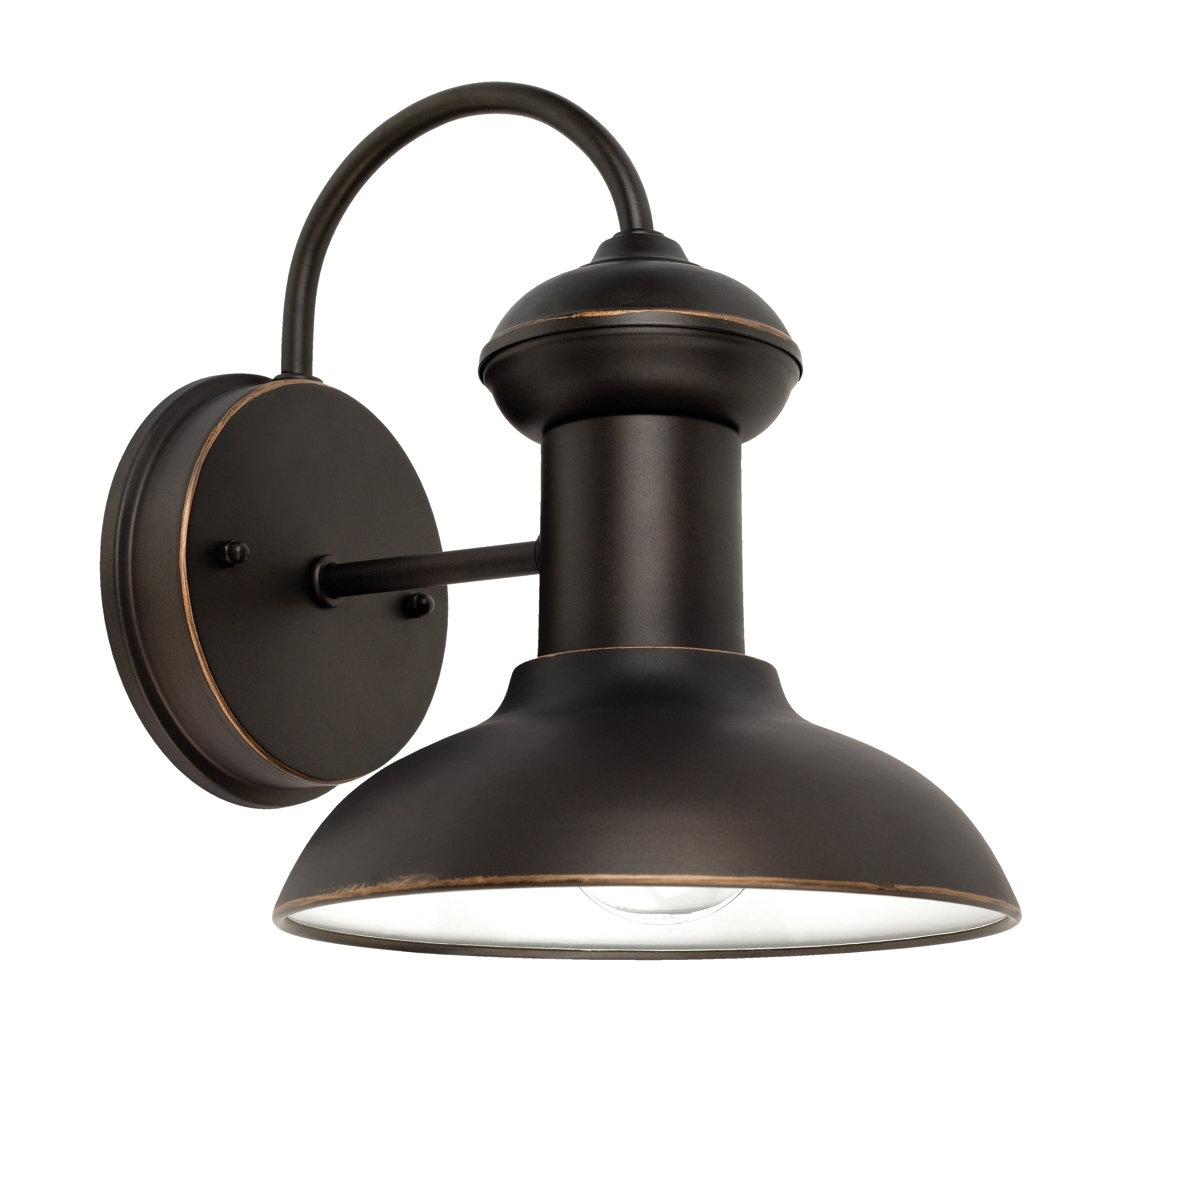 Hampton Bay Outdoor Lighting At Wayfair In Best And Newest Outdoor Wall Lighting & Barn Lights You'll Love (View 11 of 20)